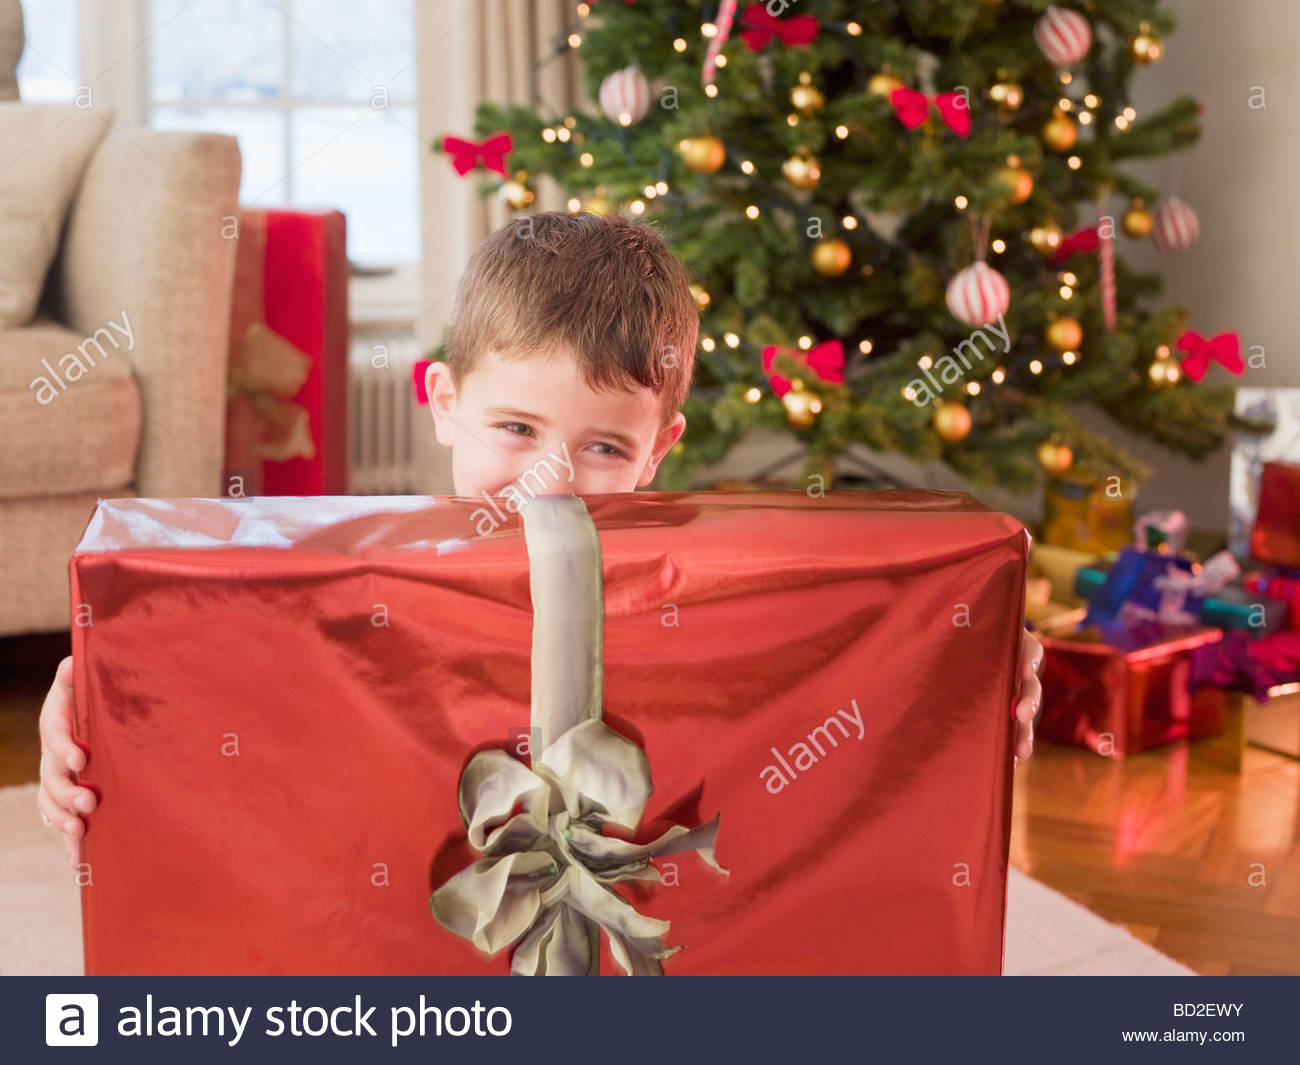 boy holding christmas gift stock image